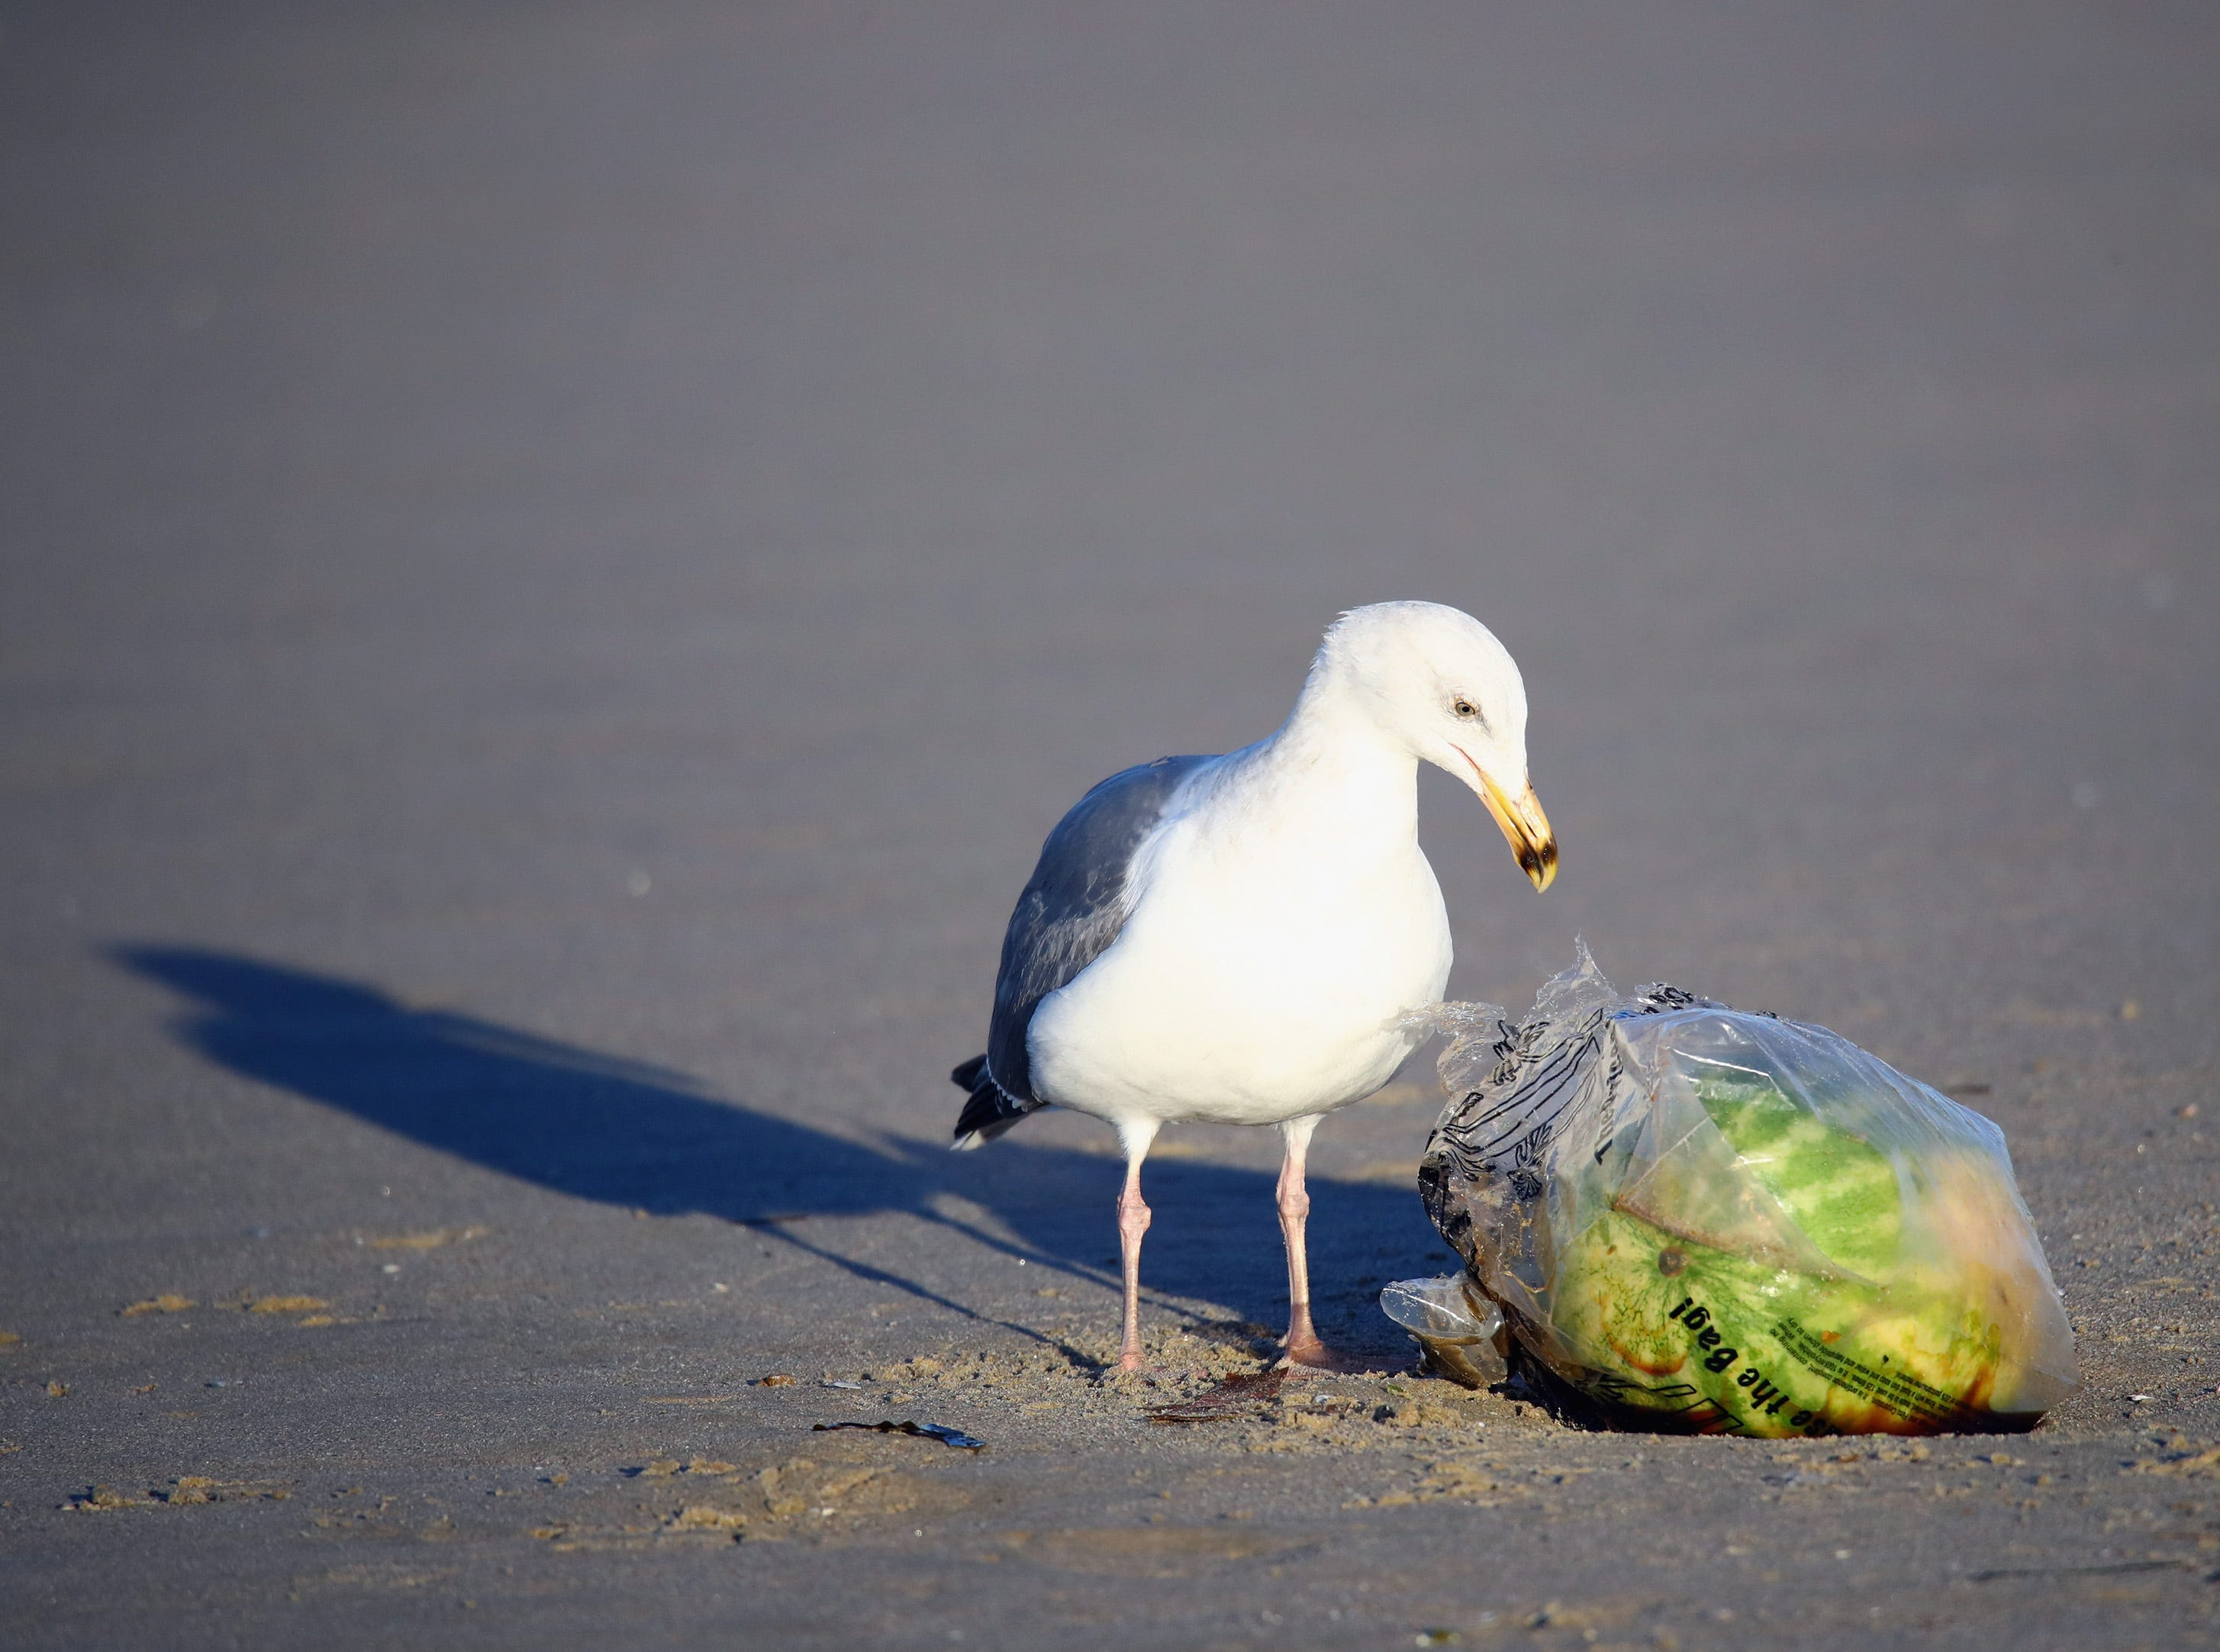 A seagull pecks at a plastic bag on Jan. 30, 2017 in Venice Beach, Calif.